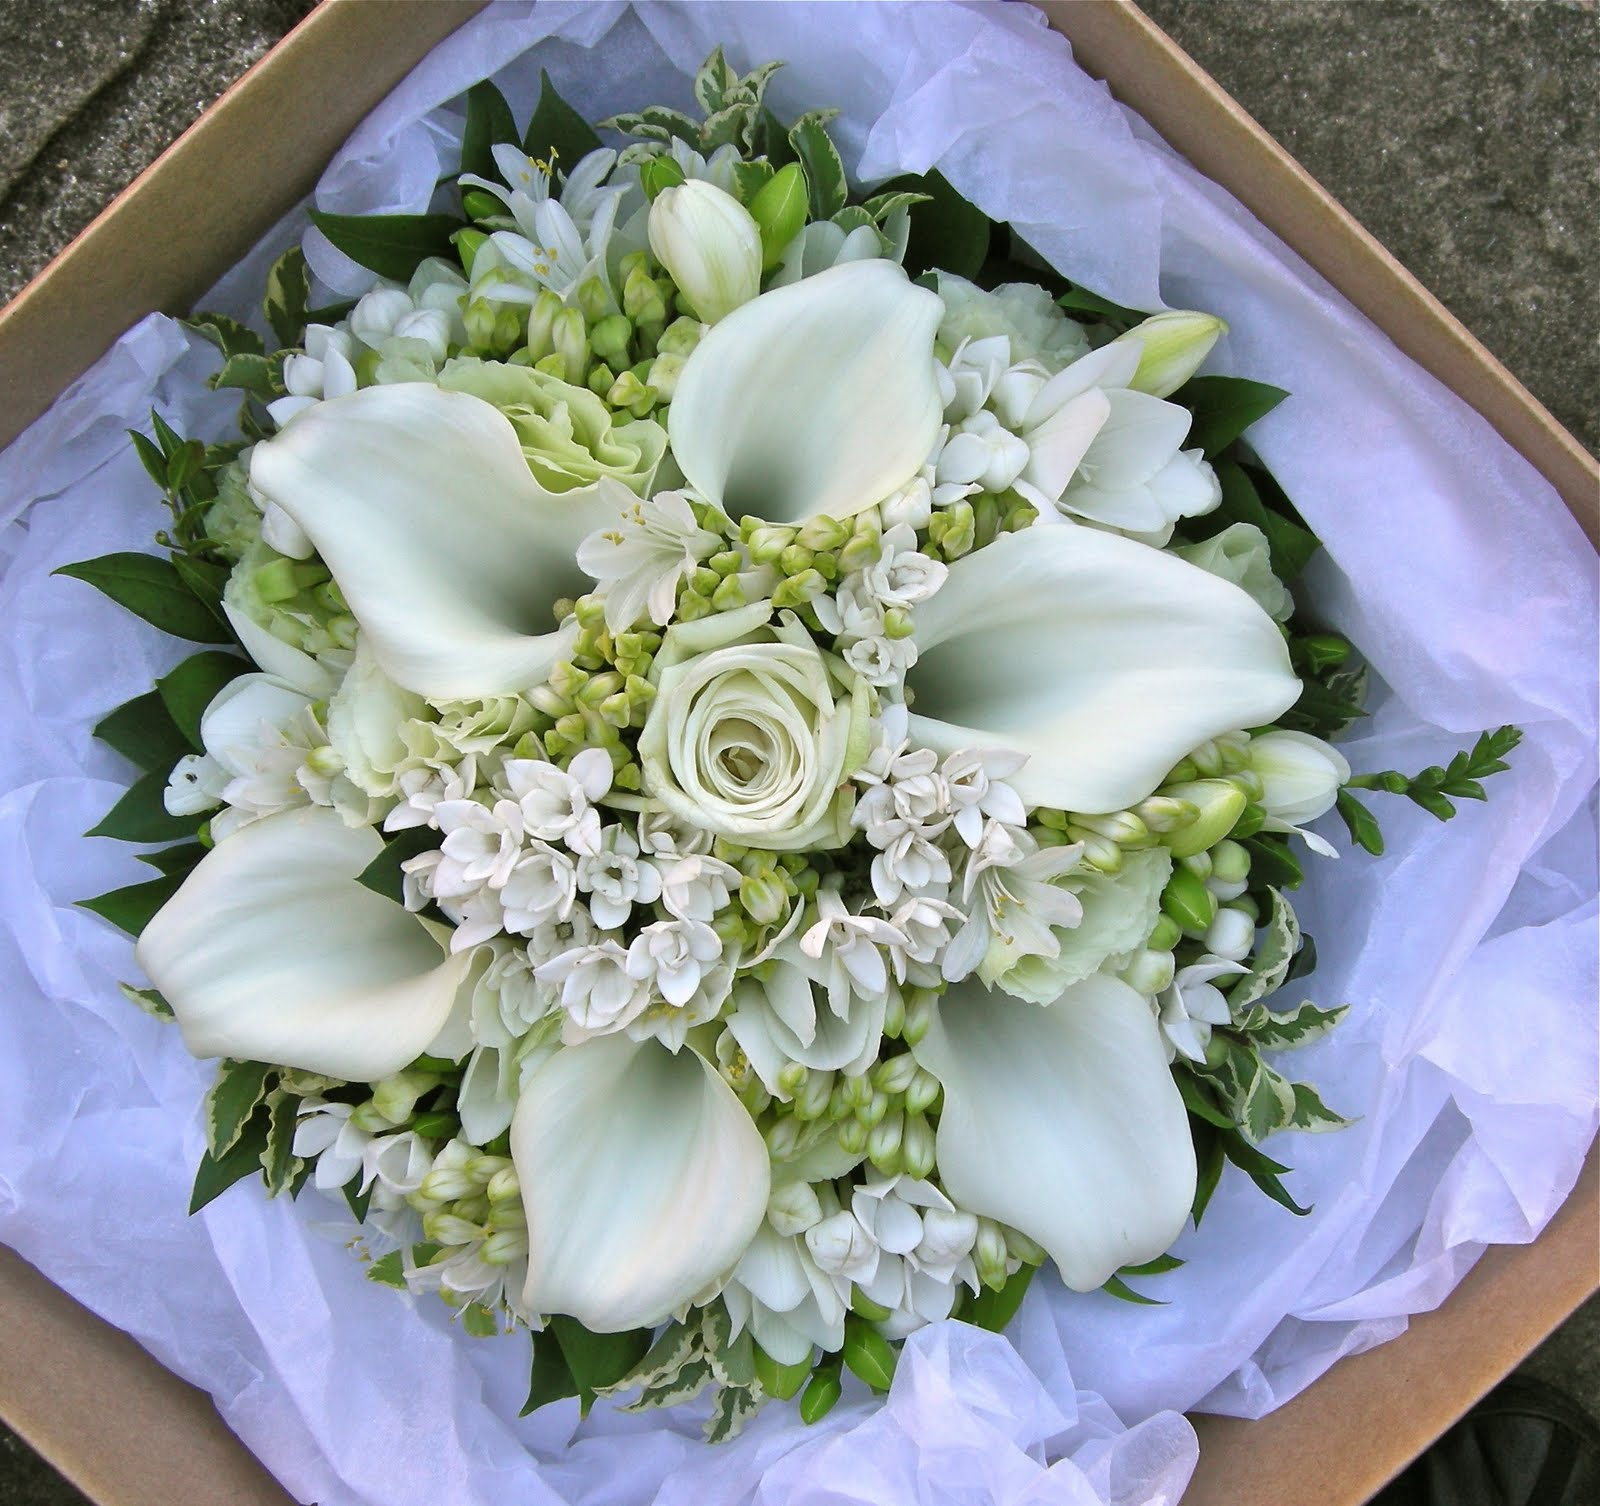 White Wedding Flowers: Wedding Flowers Blog: Alison's Pale Green And White